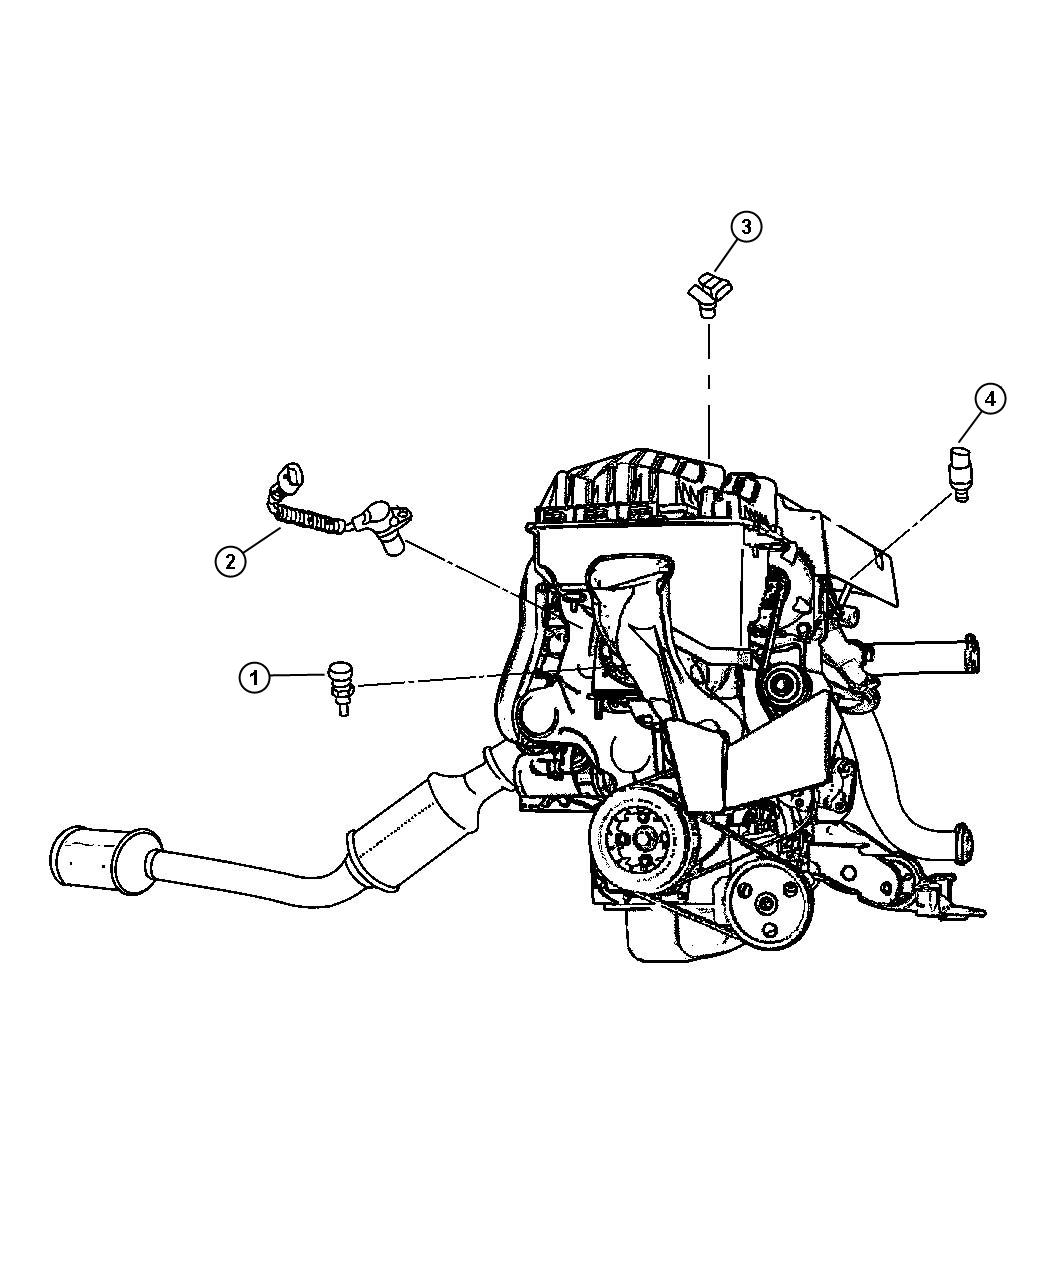 3 1l engine diagram sensor